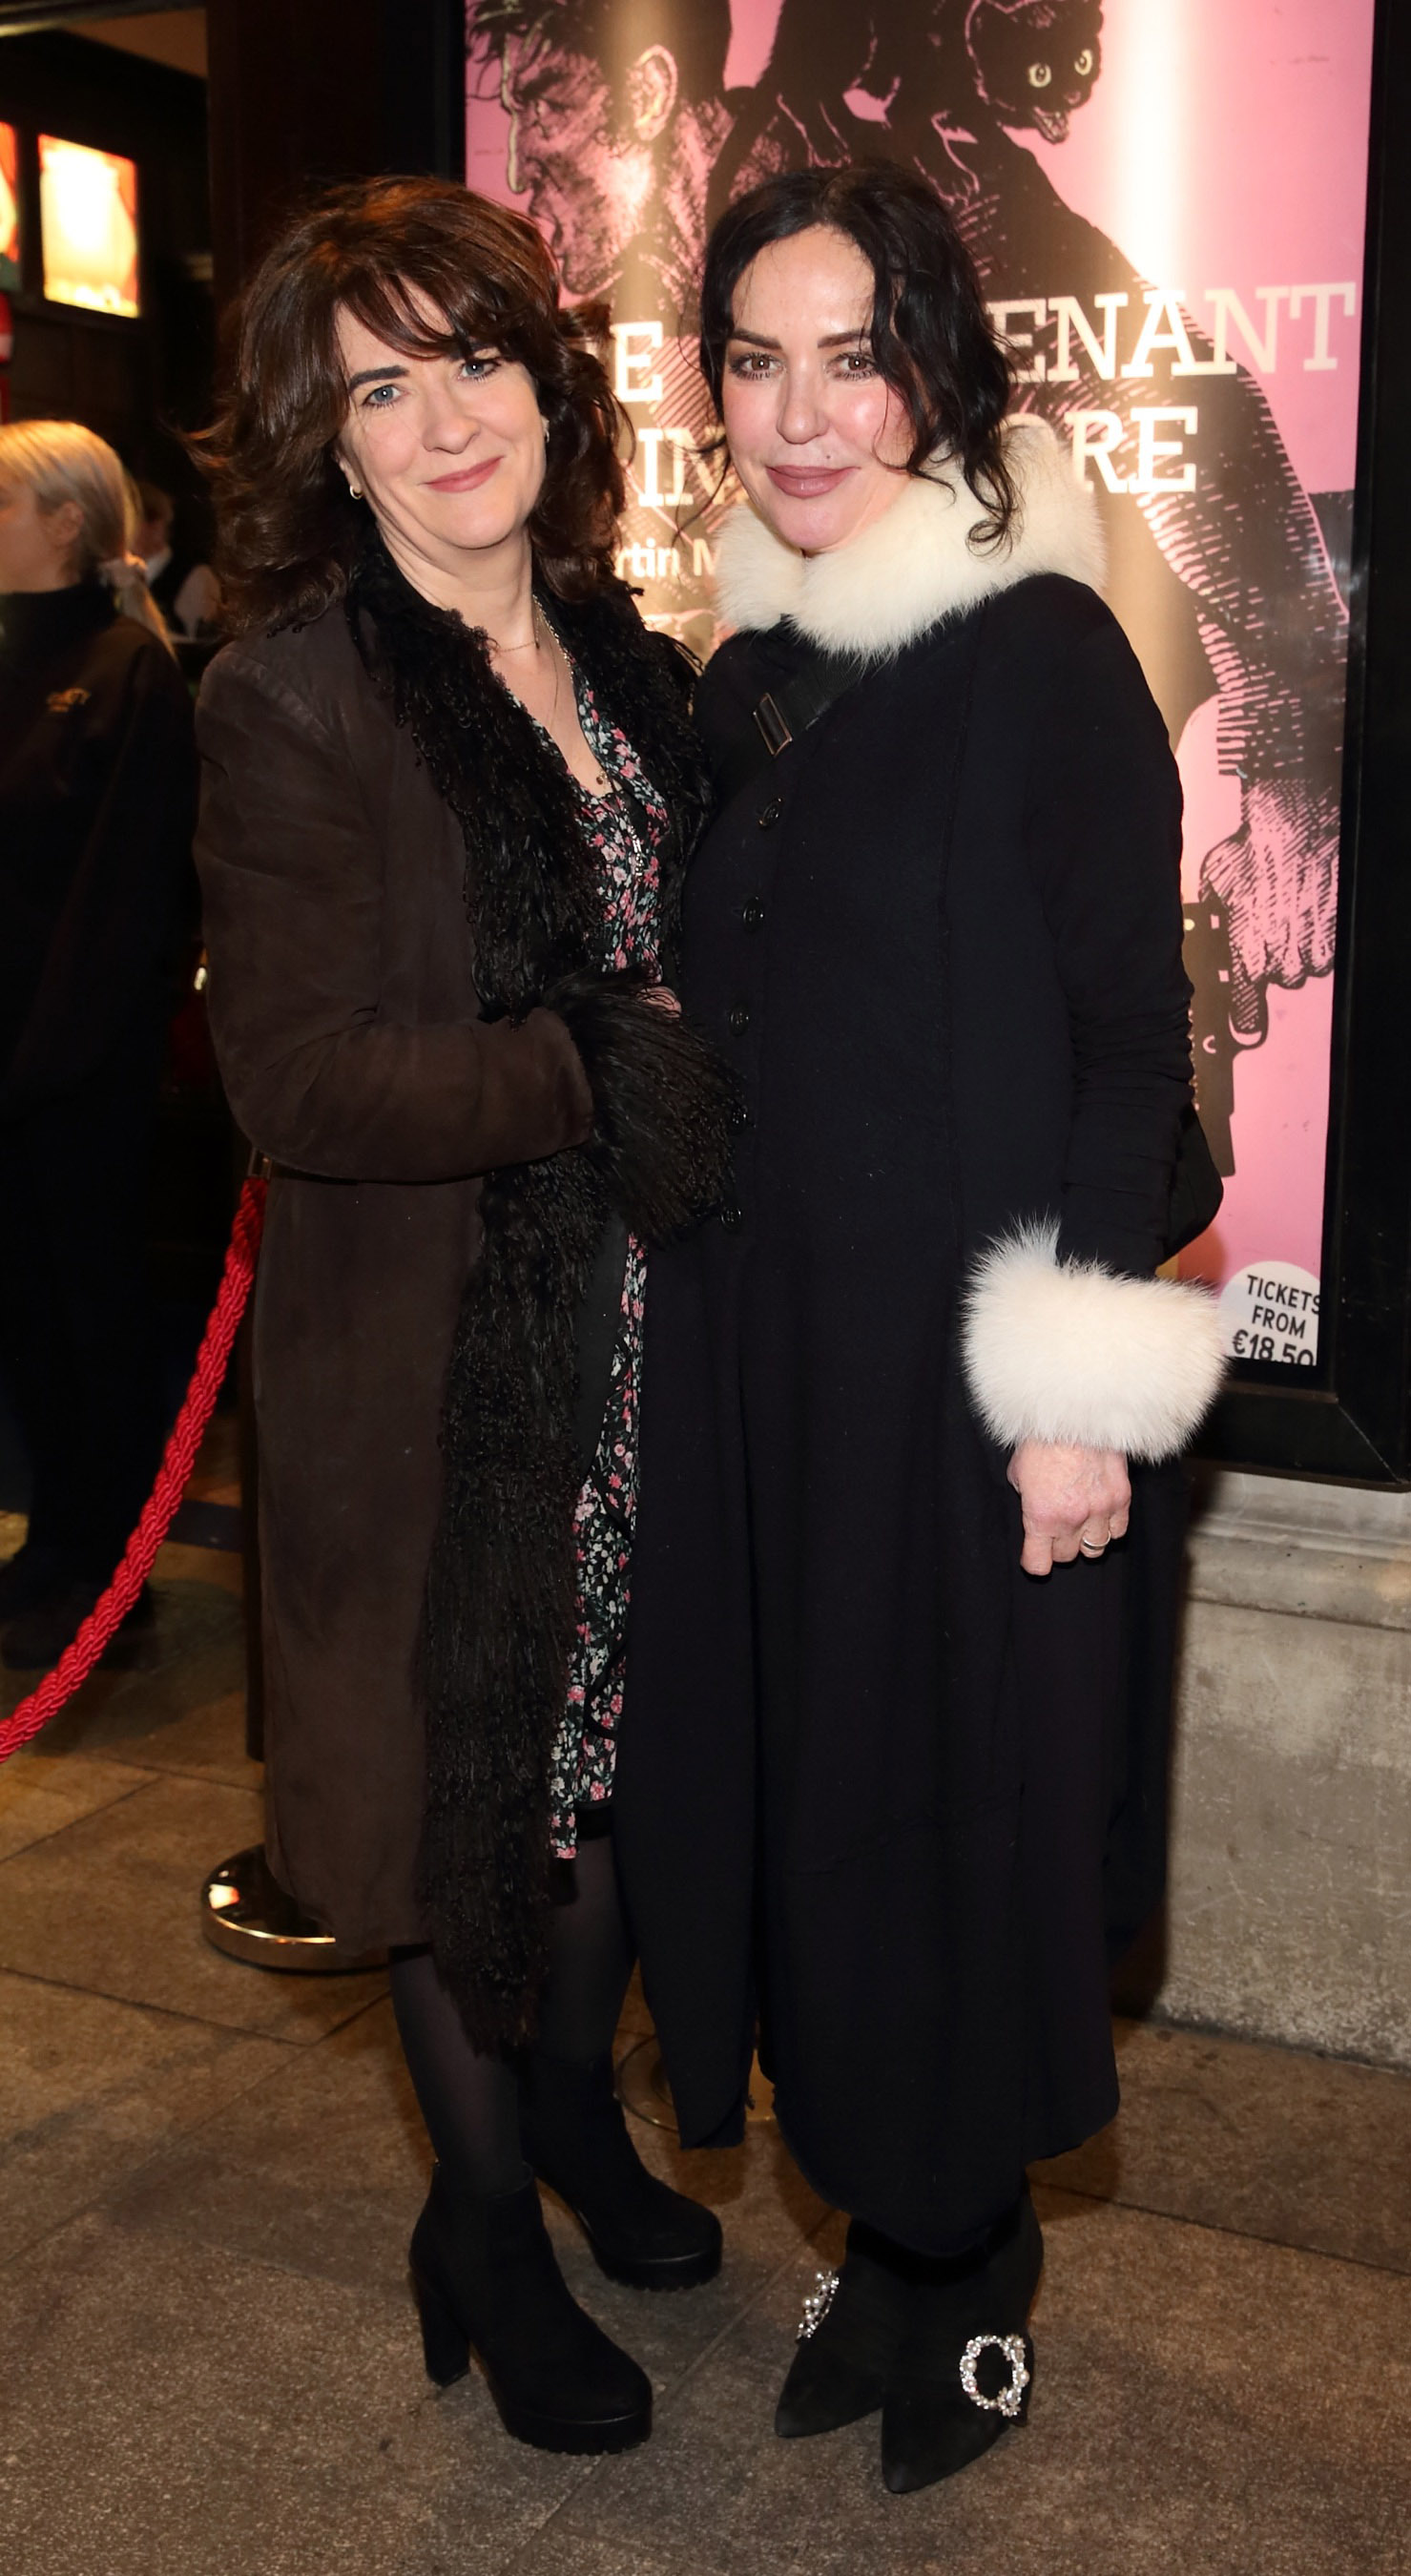 Ursula Fanning and Morah Ryan pictured at the opening of the Gaiety Theatre's major new production of Martin McDonagh's 'The Lieutenant of Inishmore', which will run at the Gaiety Theatre until 14th March.